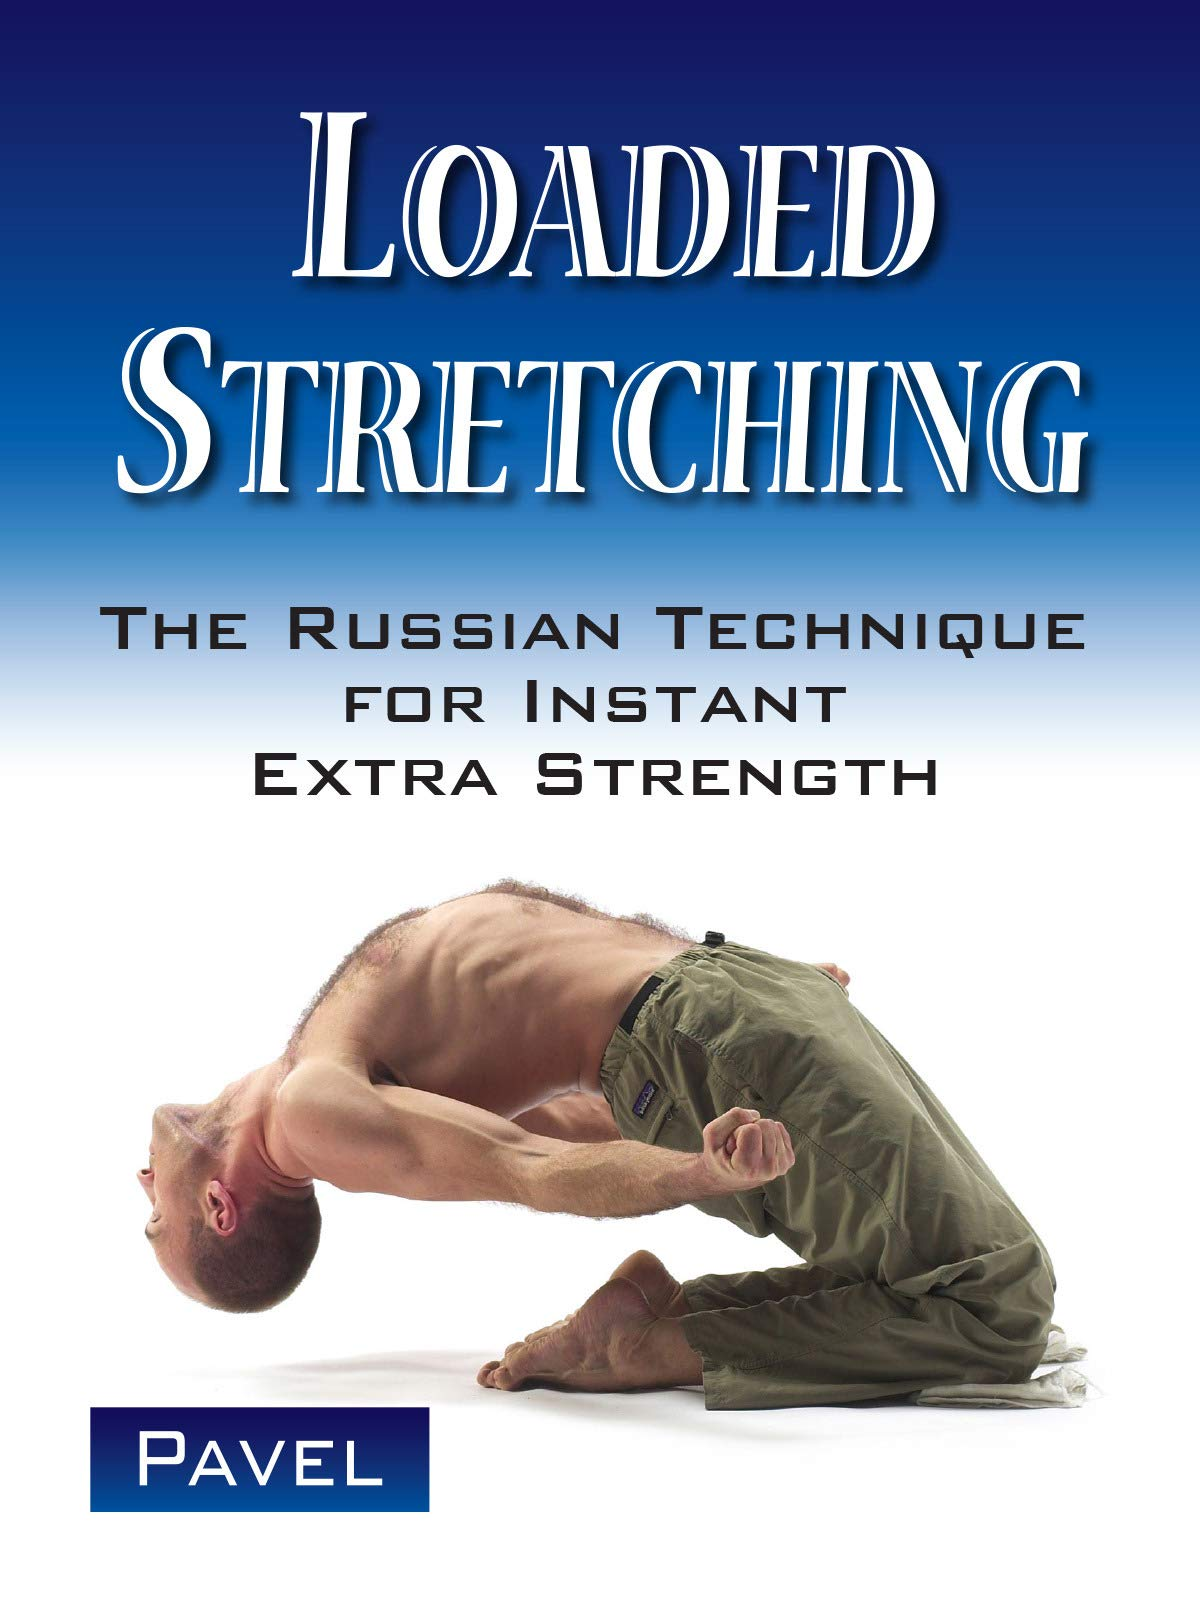 Loaded Stretching, The Russian Technique for Instant Extra Strength on Amazon Prime Instant Video UK